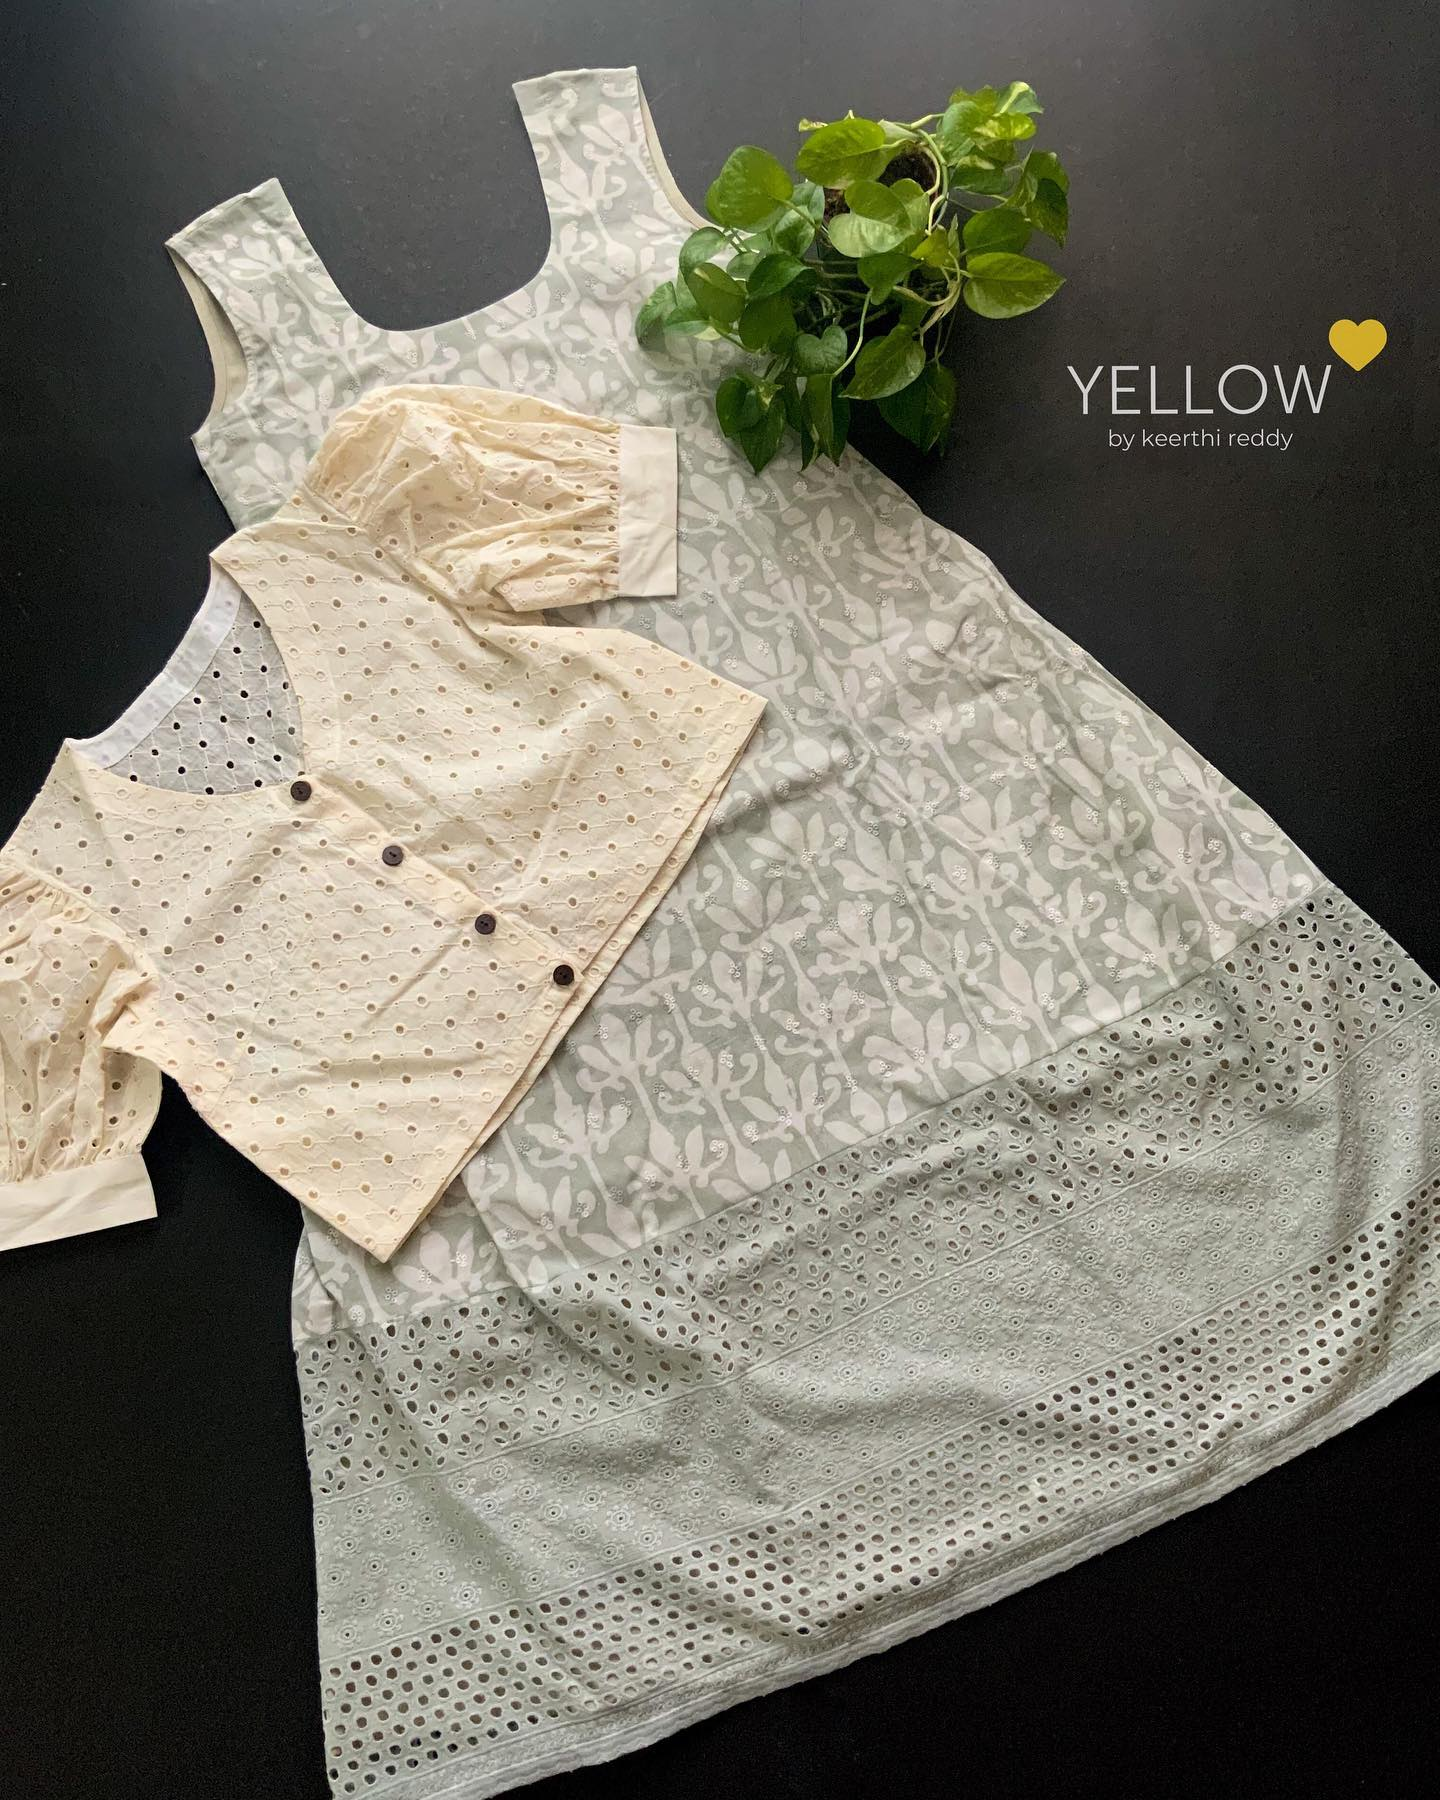 Pastel Cotton printed A line Kurti with crochet highlights paired up with detachable lace overcoat with balloon sleeves and  wooden buttons opening .   Size - S  M L XL XXL Price - 3850 INR (Includes overcoat)  . . Kindly WhatsApp  @ 7995038888 for placing orders . 2021-08-04